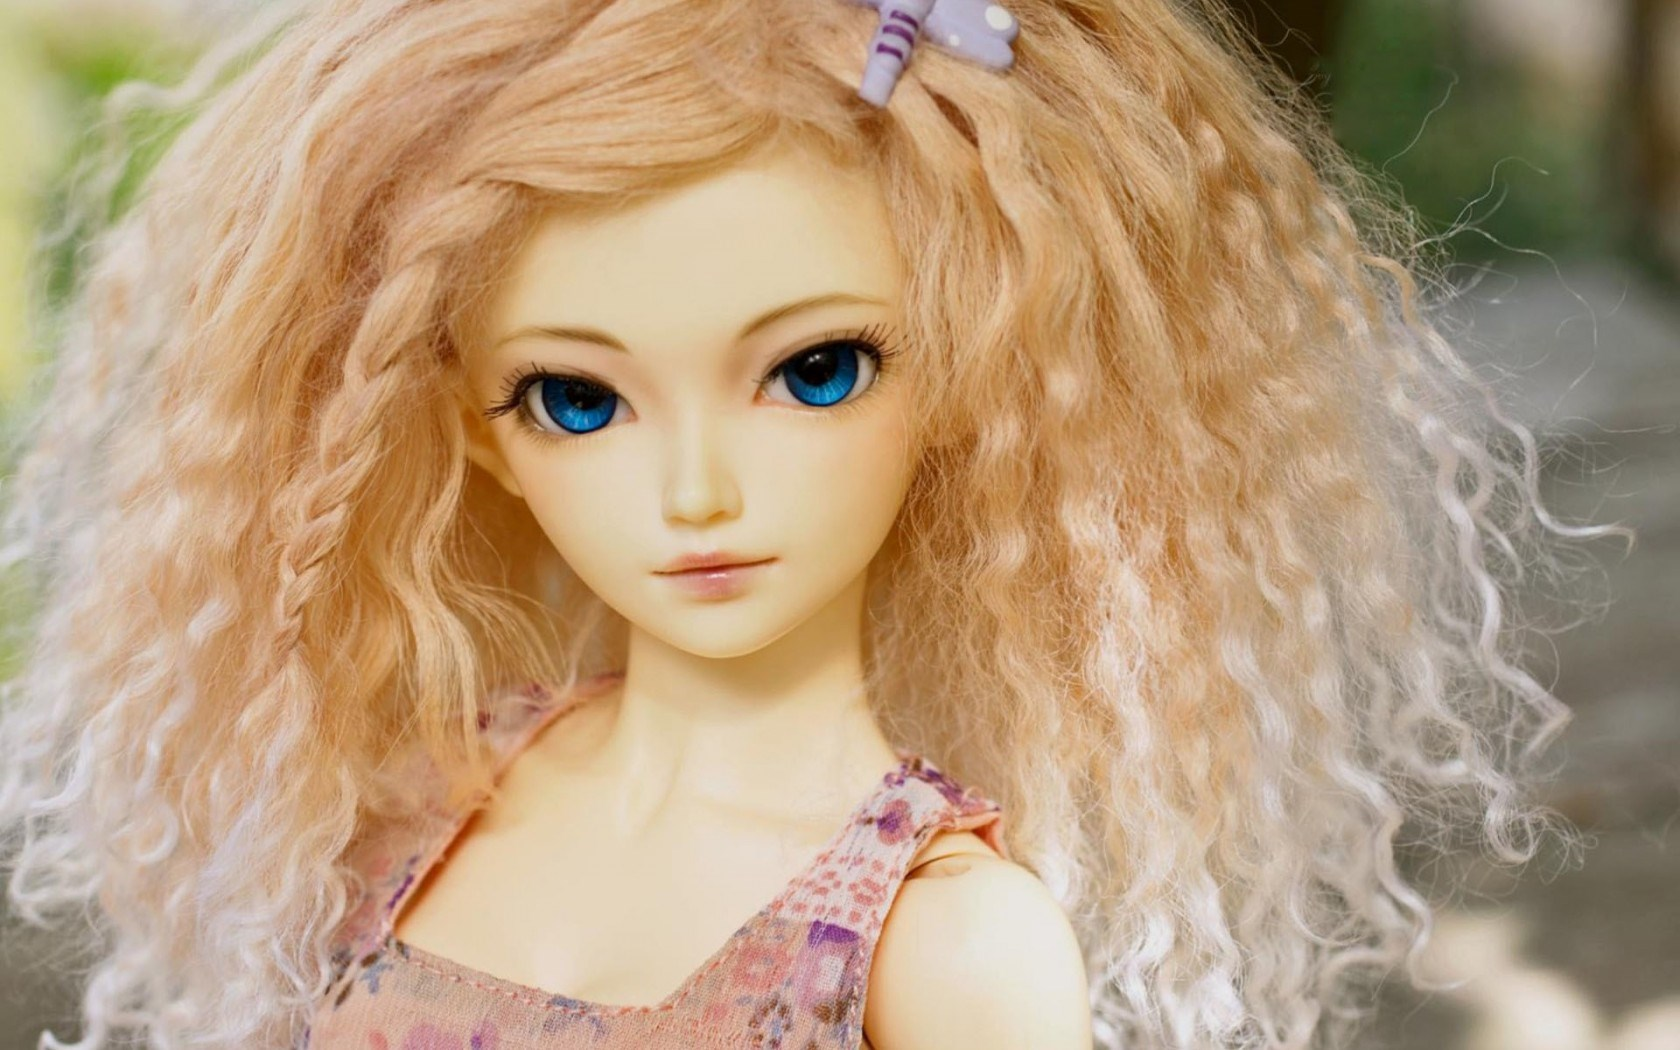 Fantastic Wallpaper Love Barbie - toy-doll-pictures-42324-43320-hd-wallpapers  Snapshot_557511.jpg